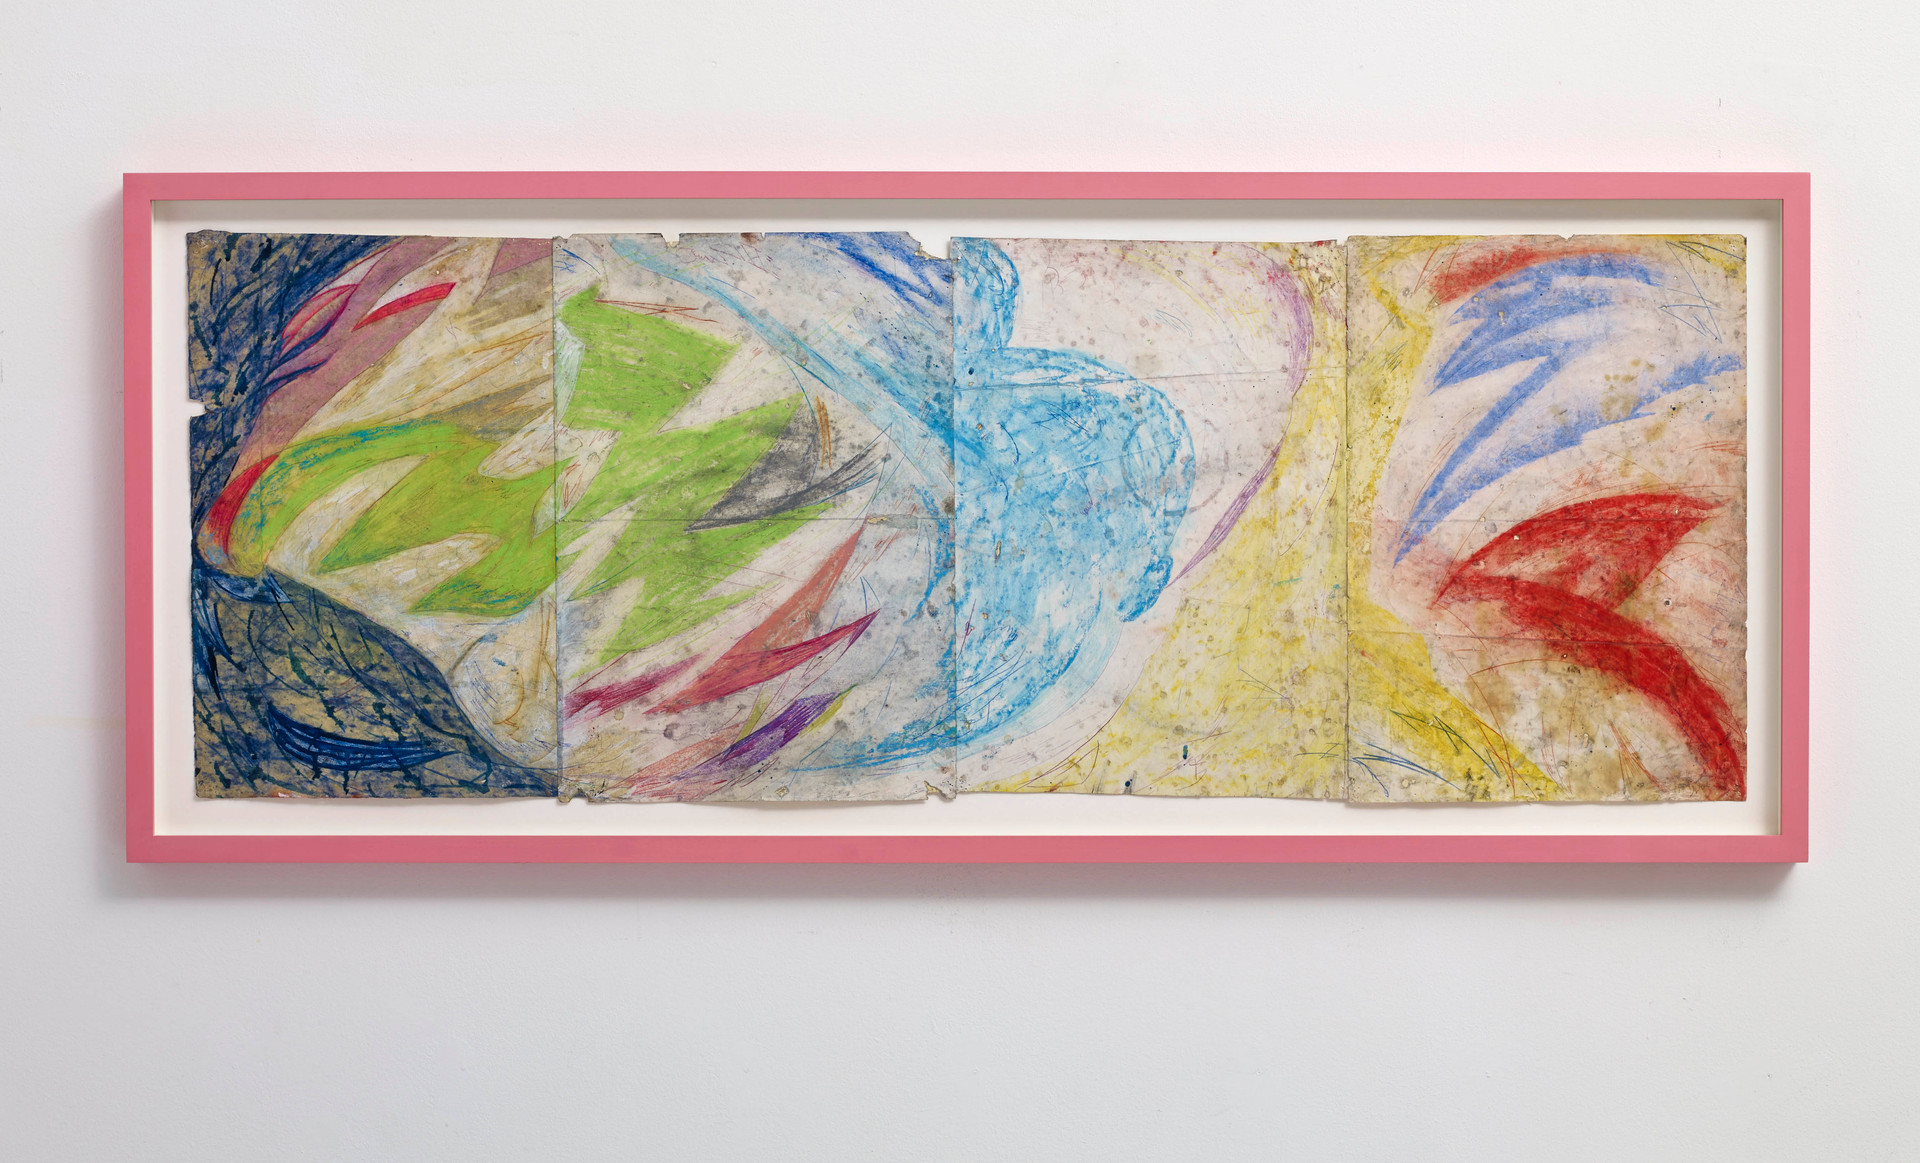 ~ an albatross necklace. 2015-16. oil paint, pencil, graphite and pastel on paper with artist frame. 51 x 124 x 4 cm